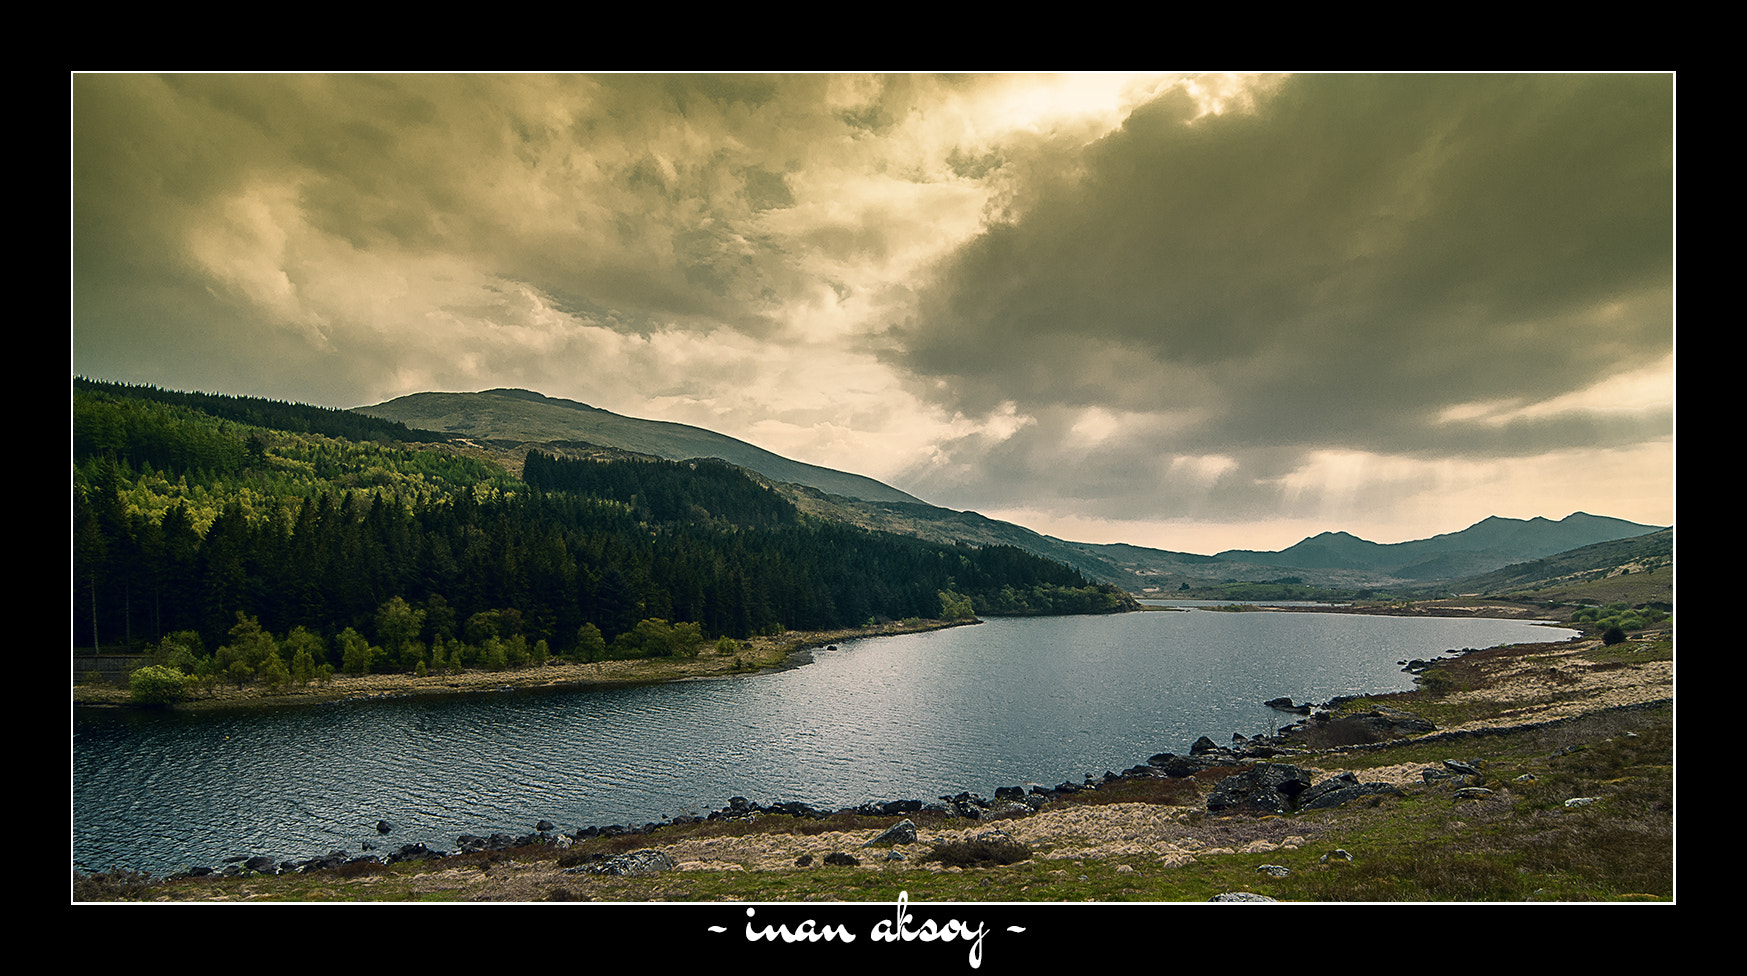 Photograph Wales - Snowdonia by Inan Aksoy on 500px